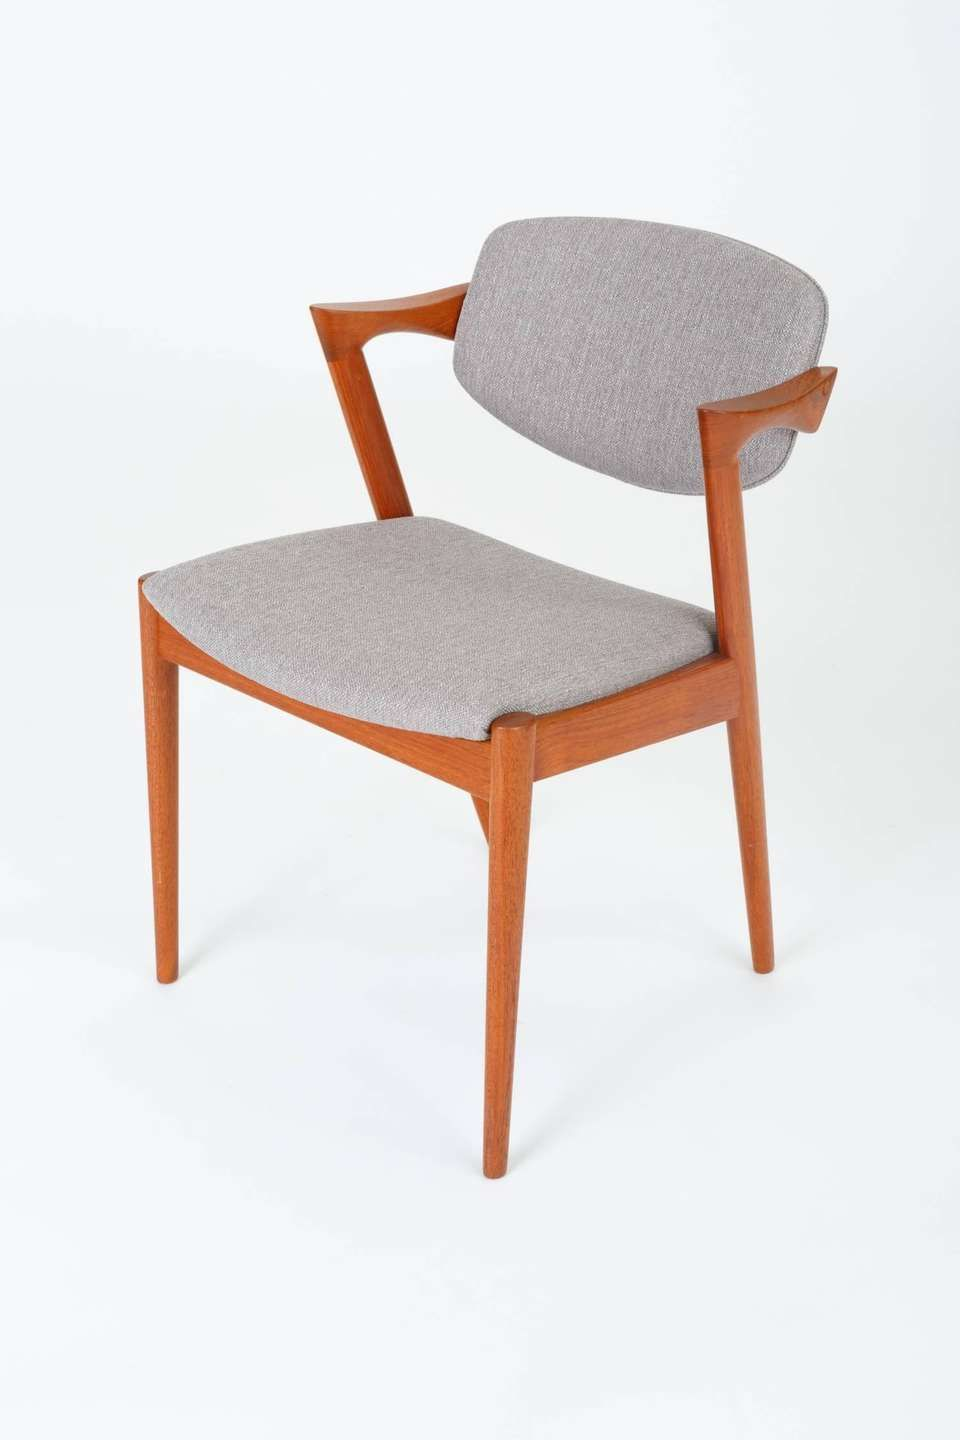 Danish Modern Dining Chairs For Sale For Sale On 1stdibs A Set Of Six Danish Modern Teak Dining